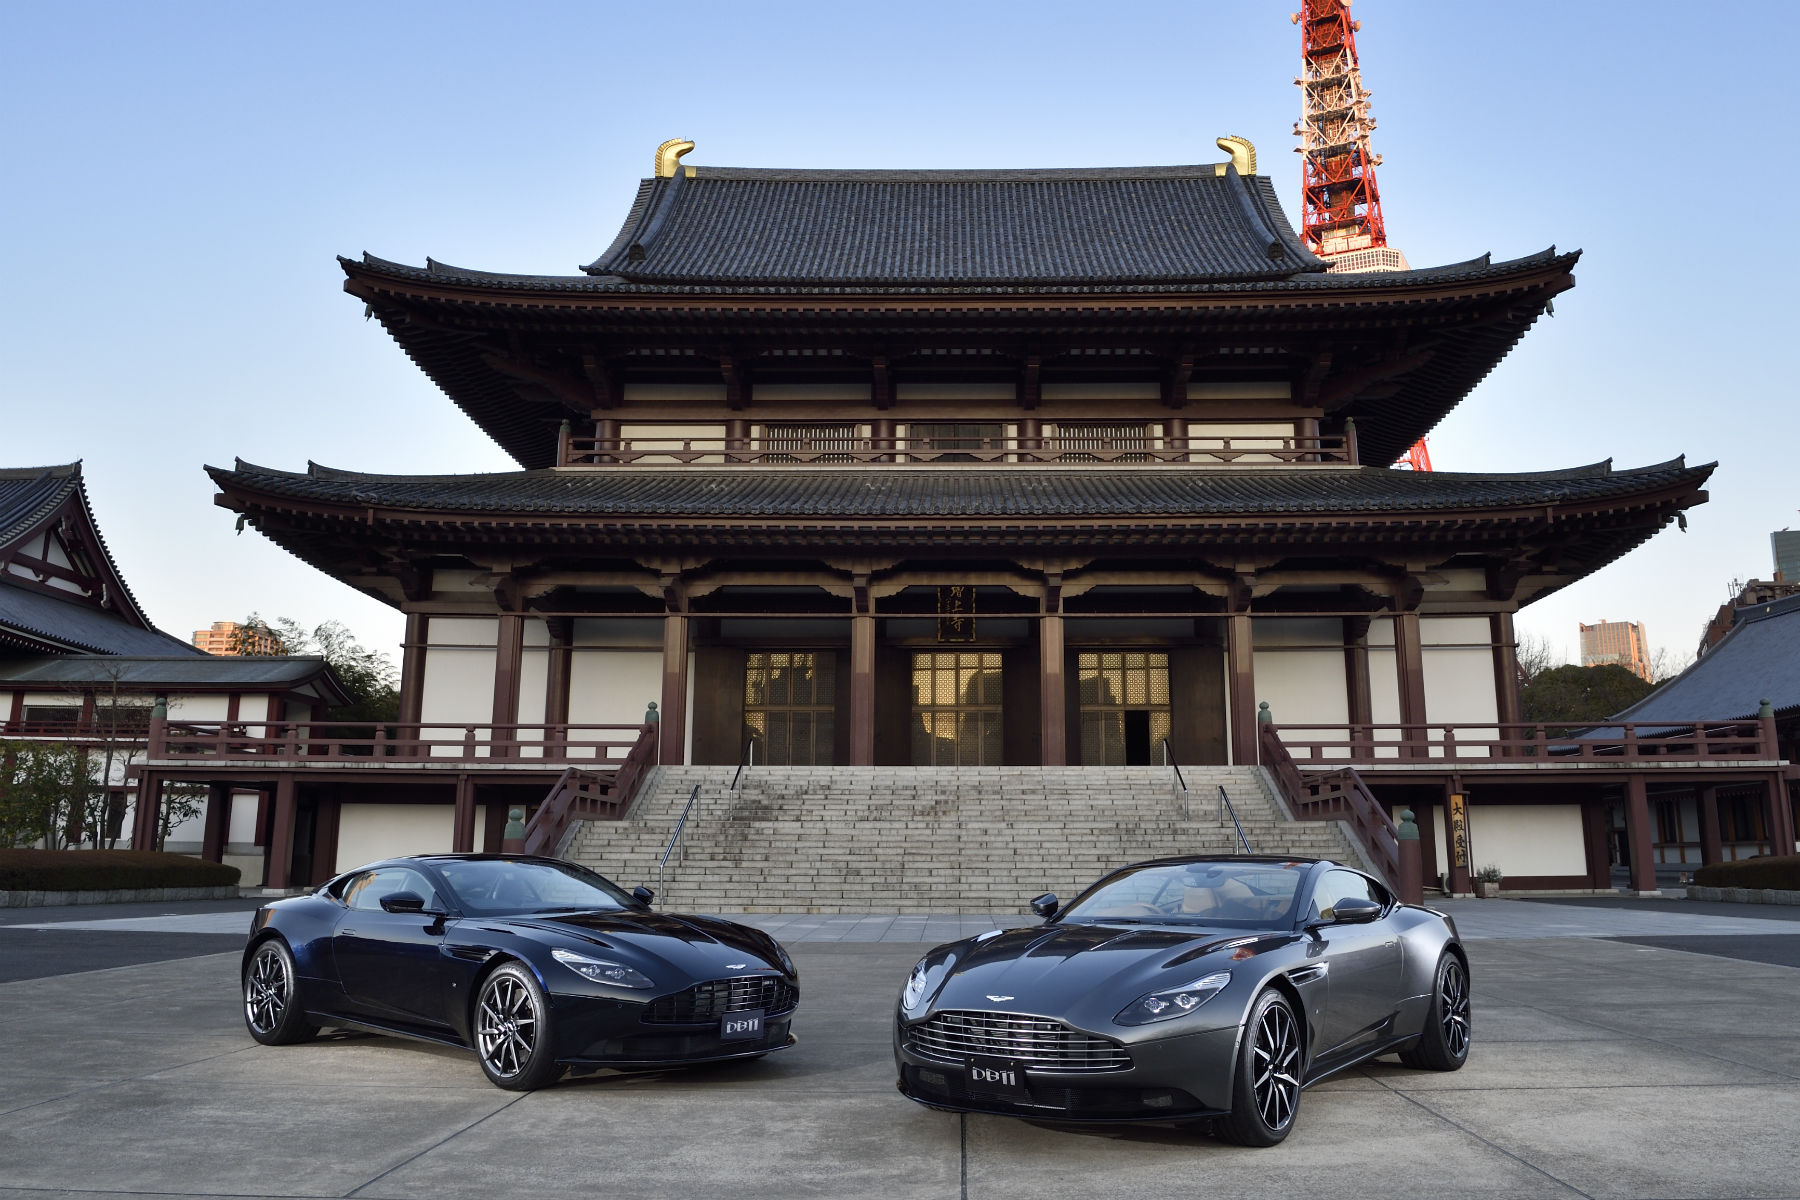 aston martin agrees £500m trade deal with japan